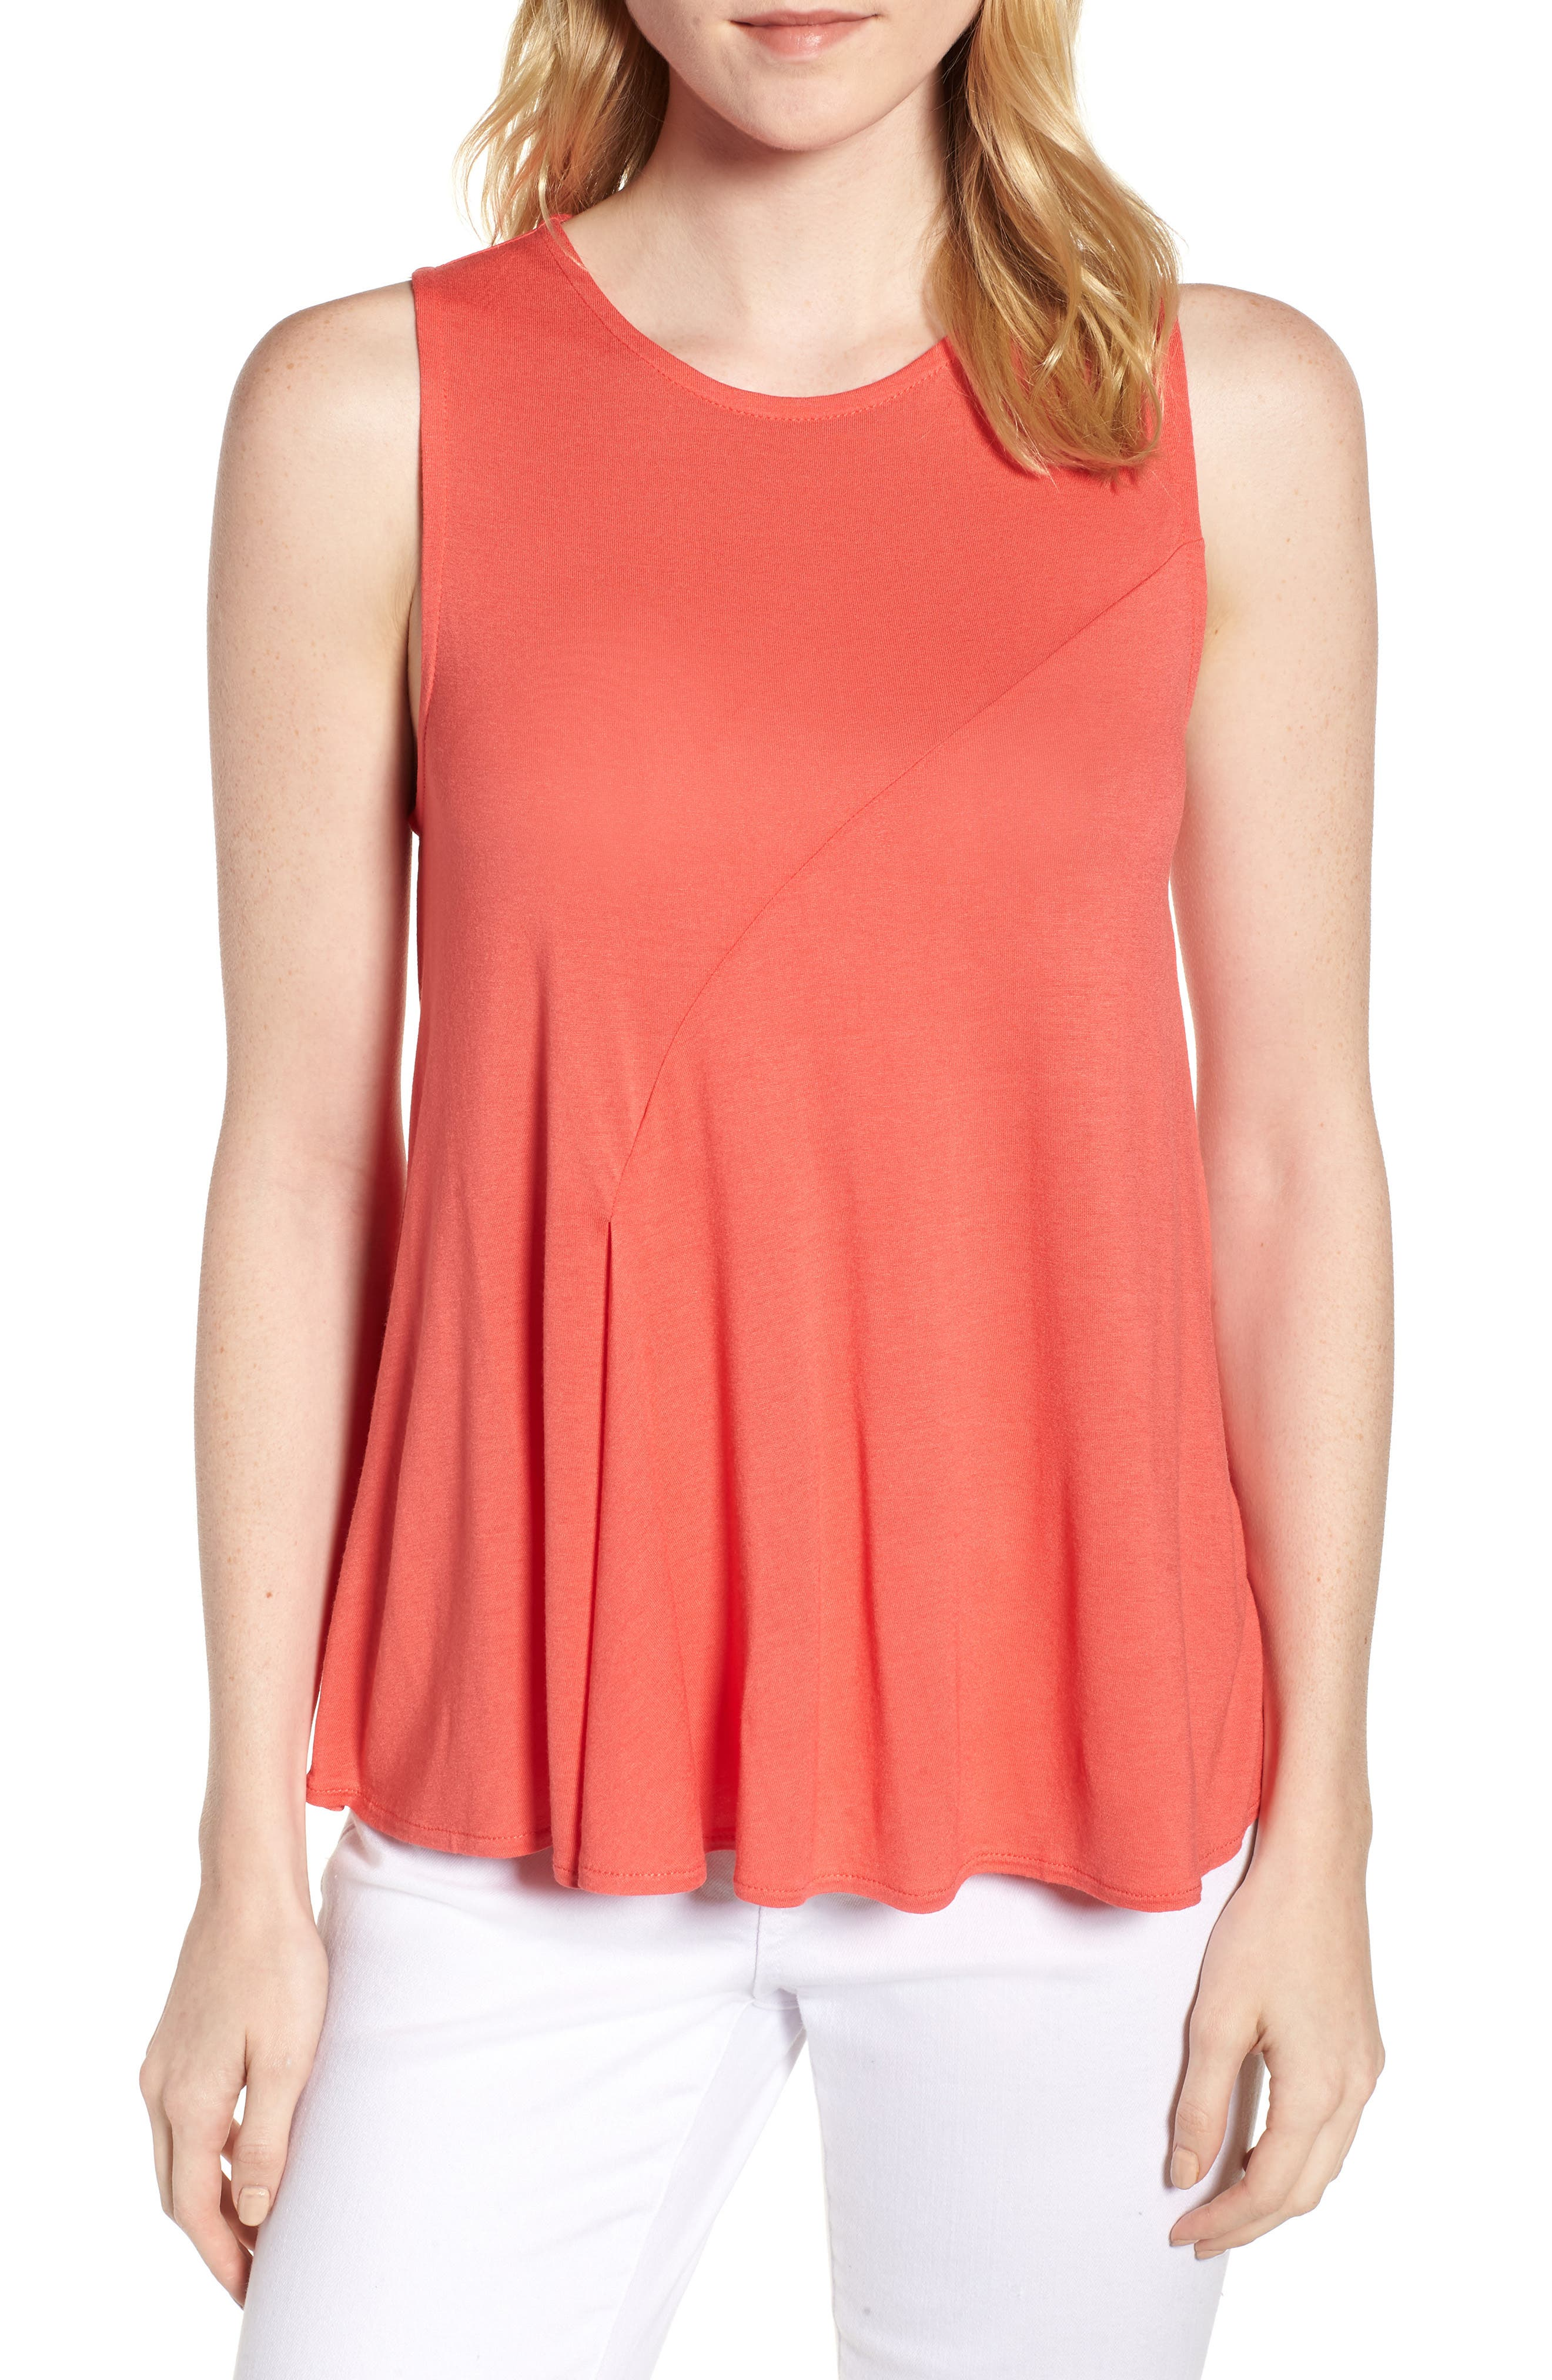 J.Crew Pleated Swing Tank Top,                         Main,                         color, Coral